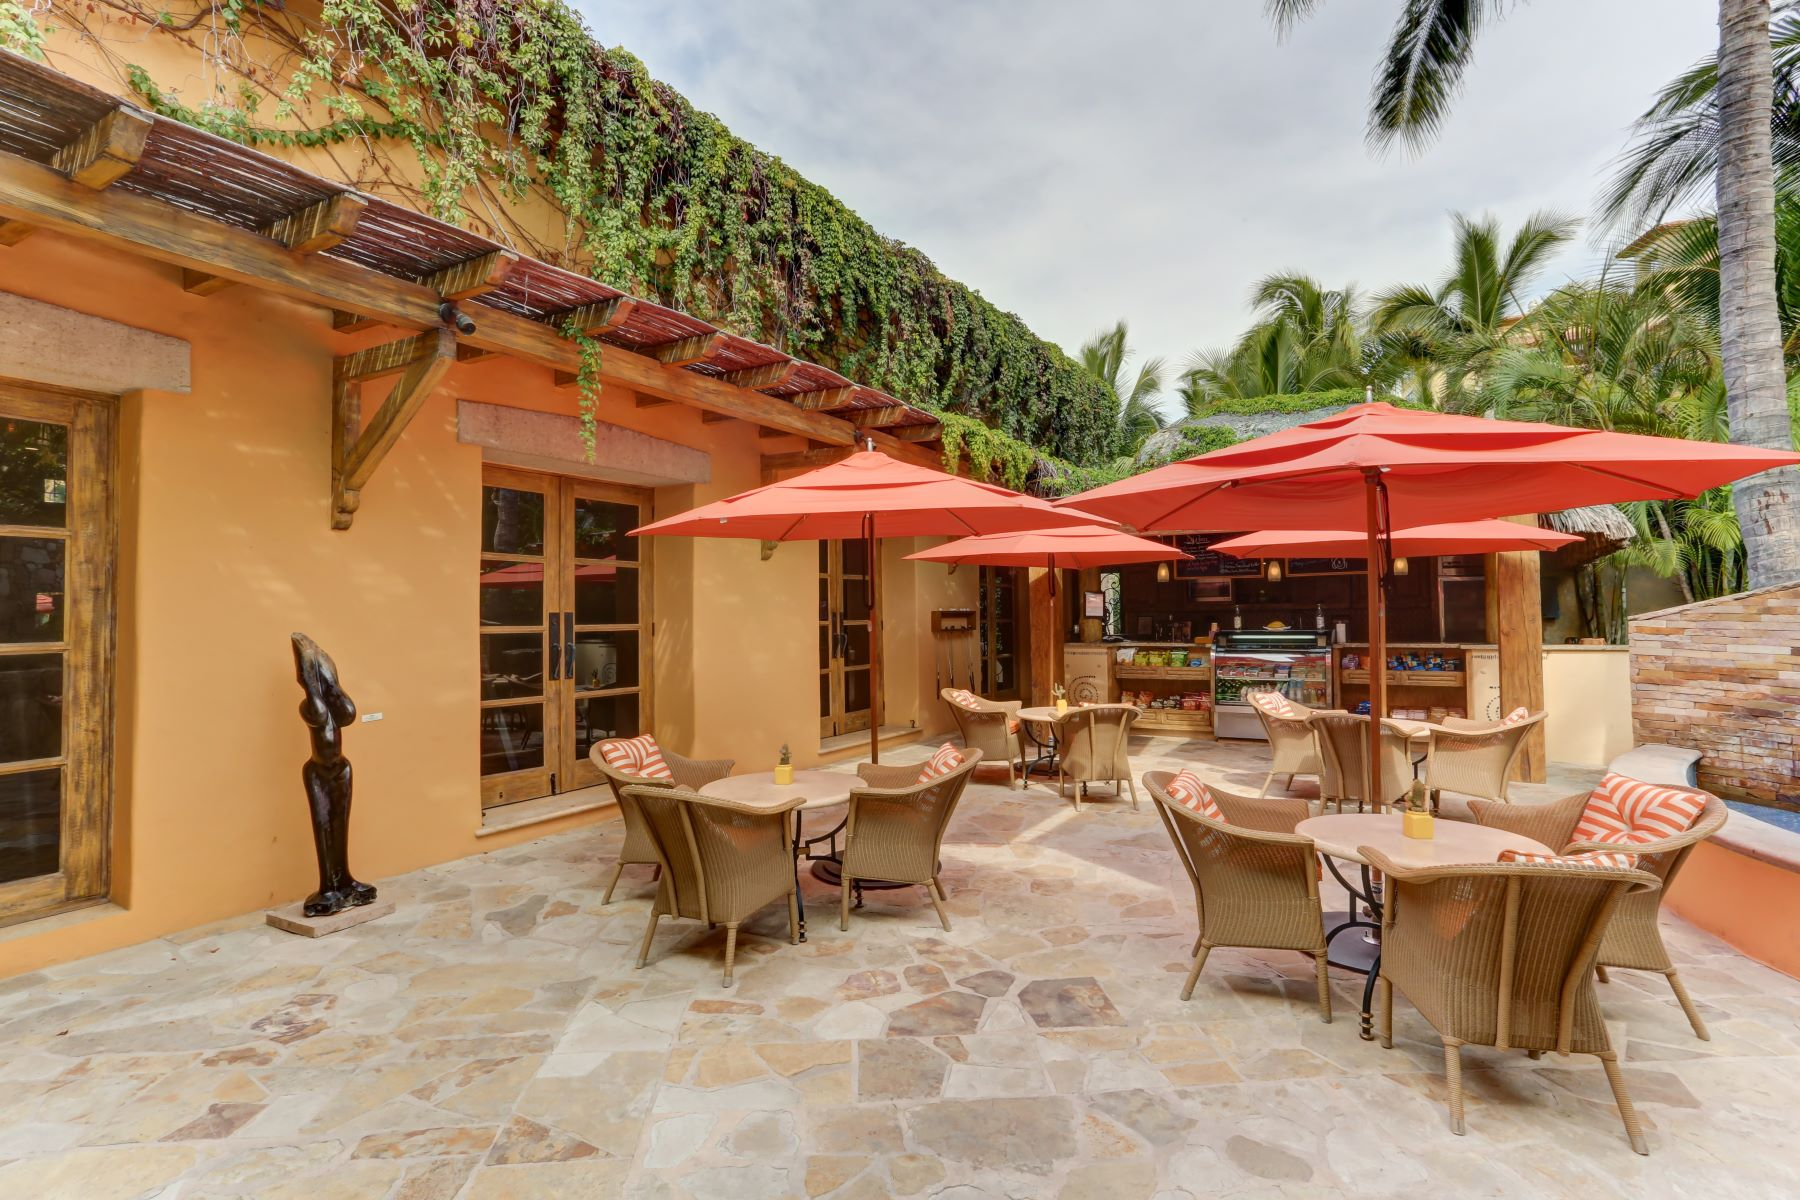 Additional photo for property listing at Residence 5-204 Cabo San Lucas, Baja California Sur Mexico